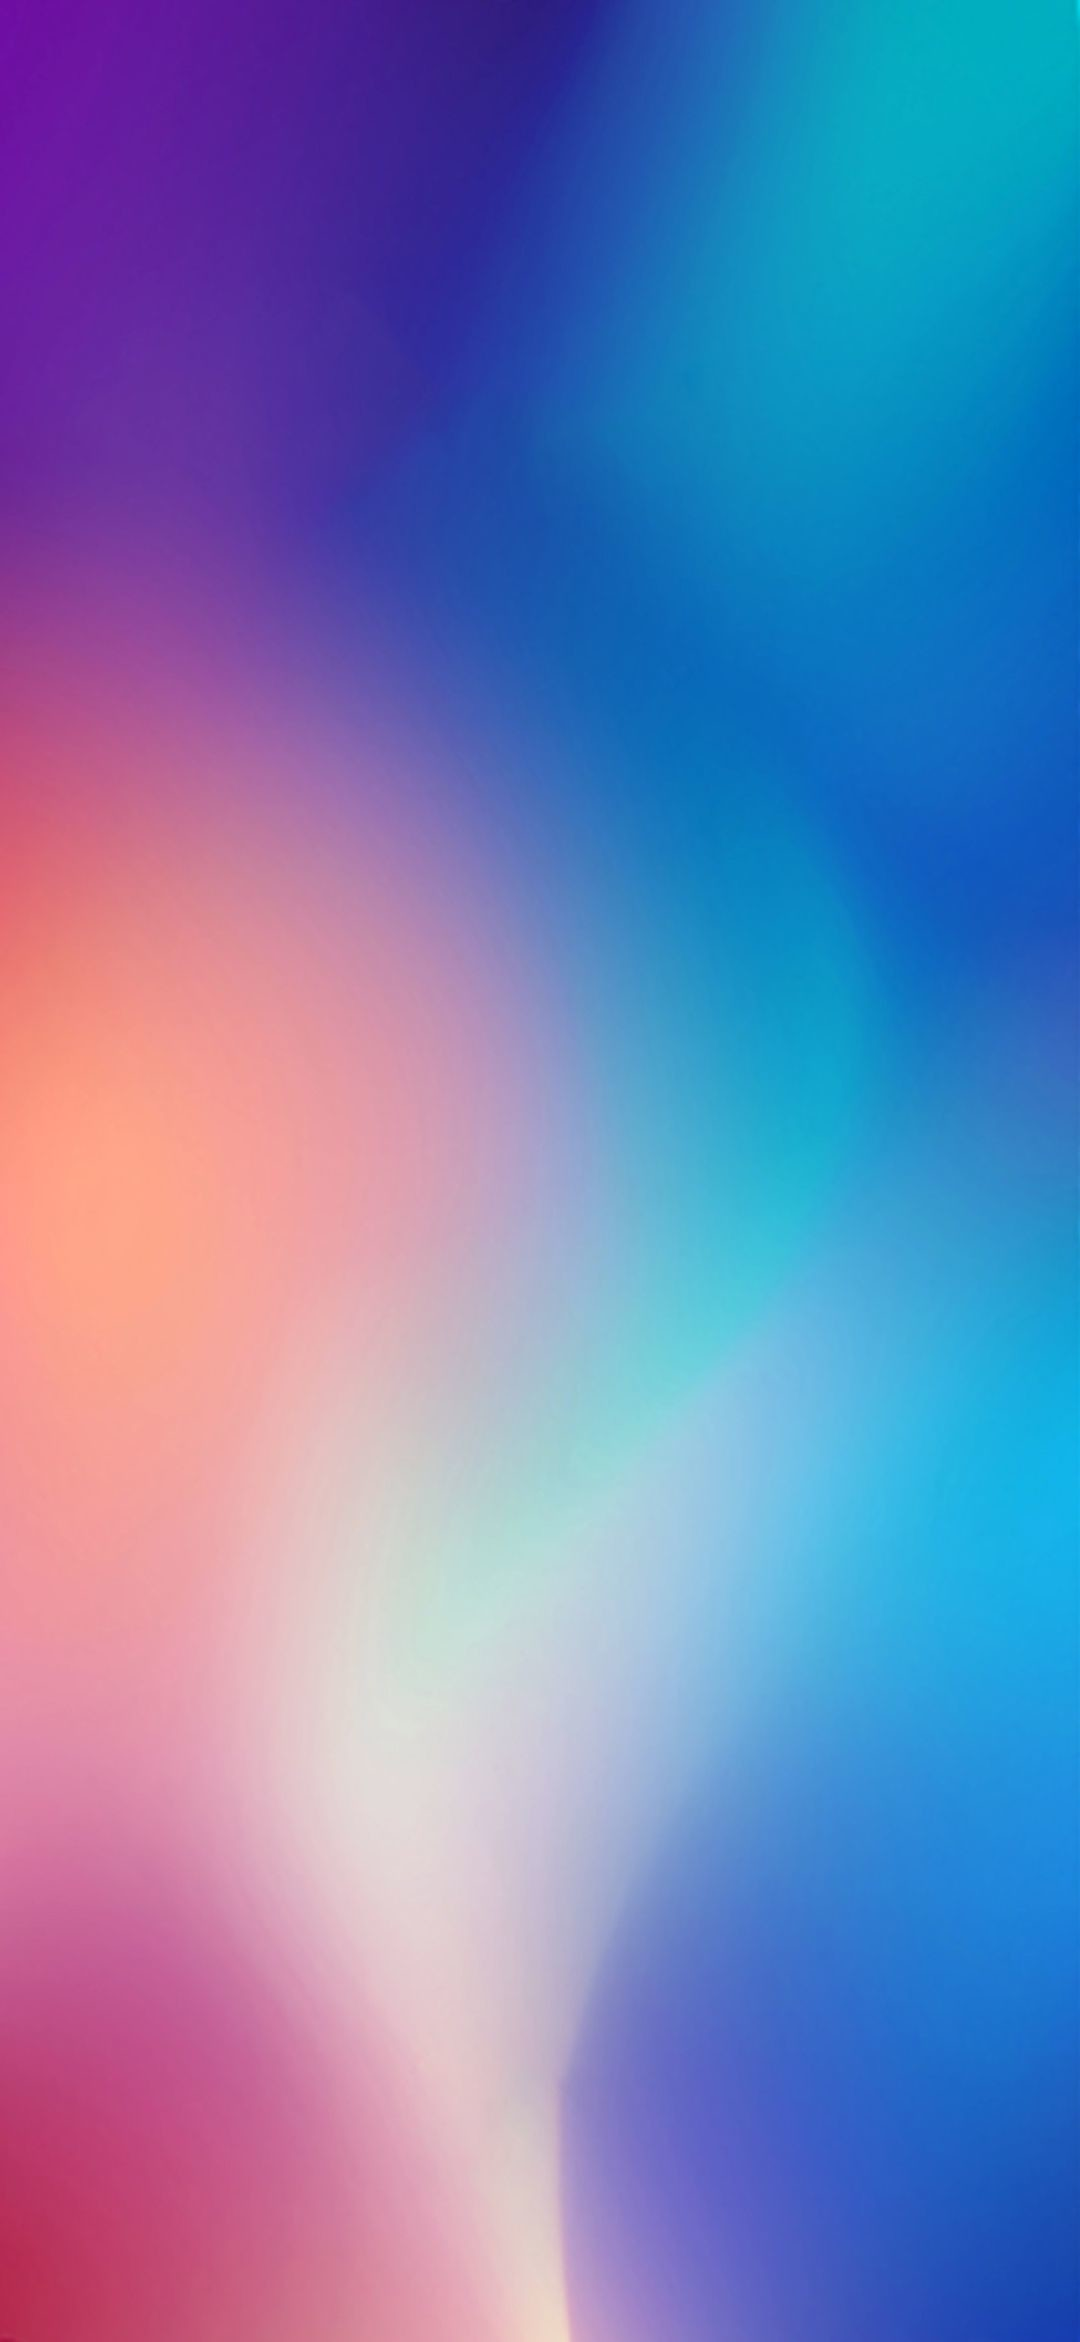 1080x2342 xiaomi mi 9 official stock wallpaper